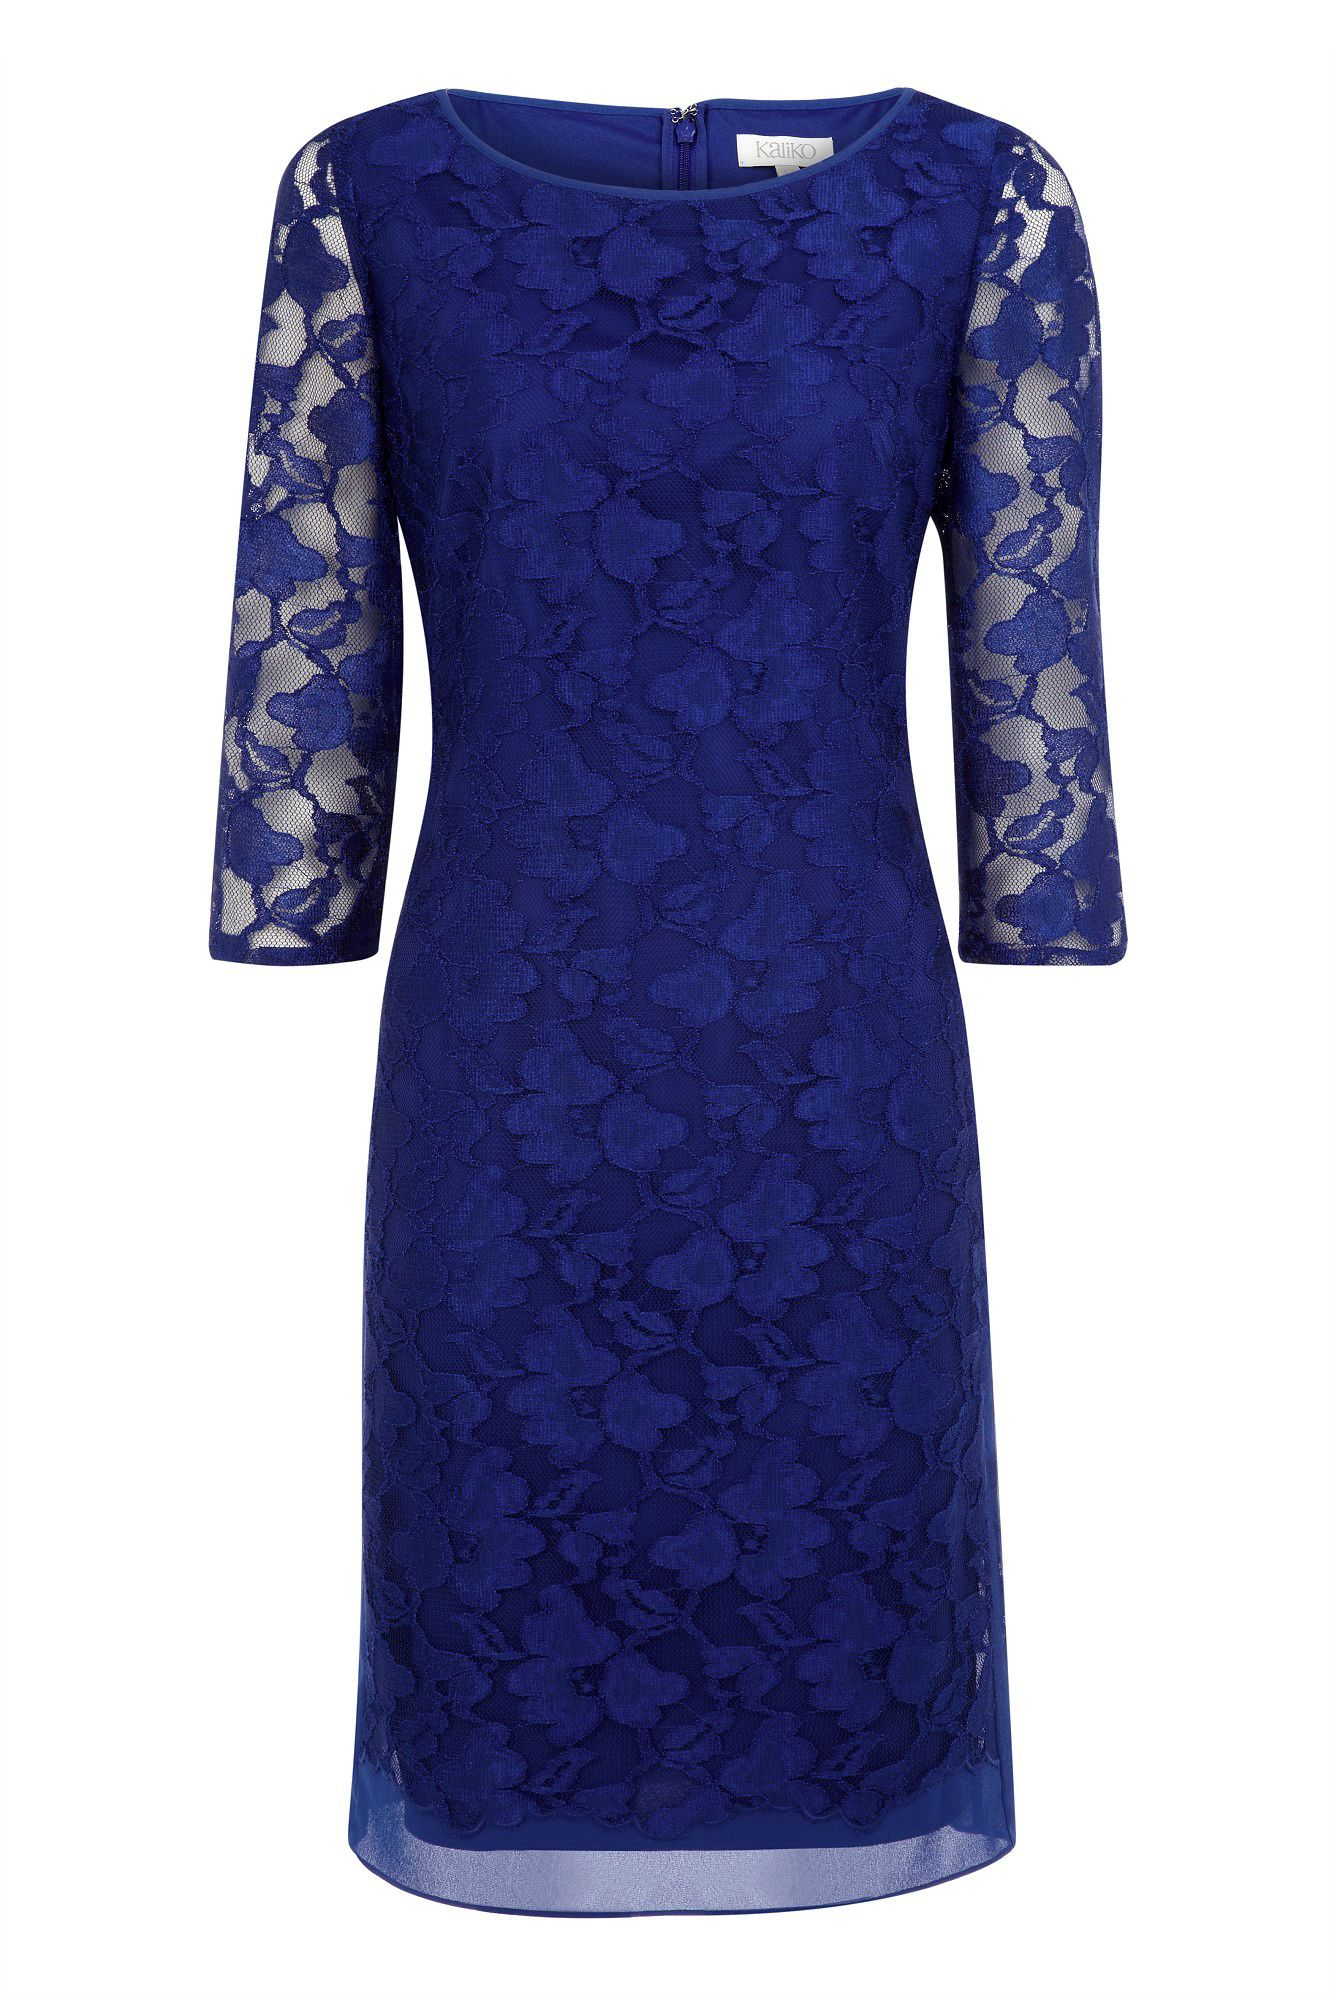 Panel detailed lace dress